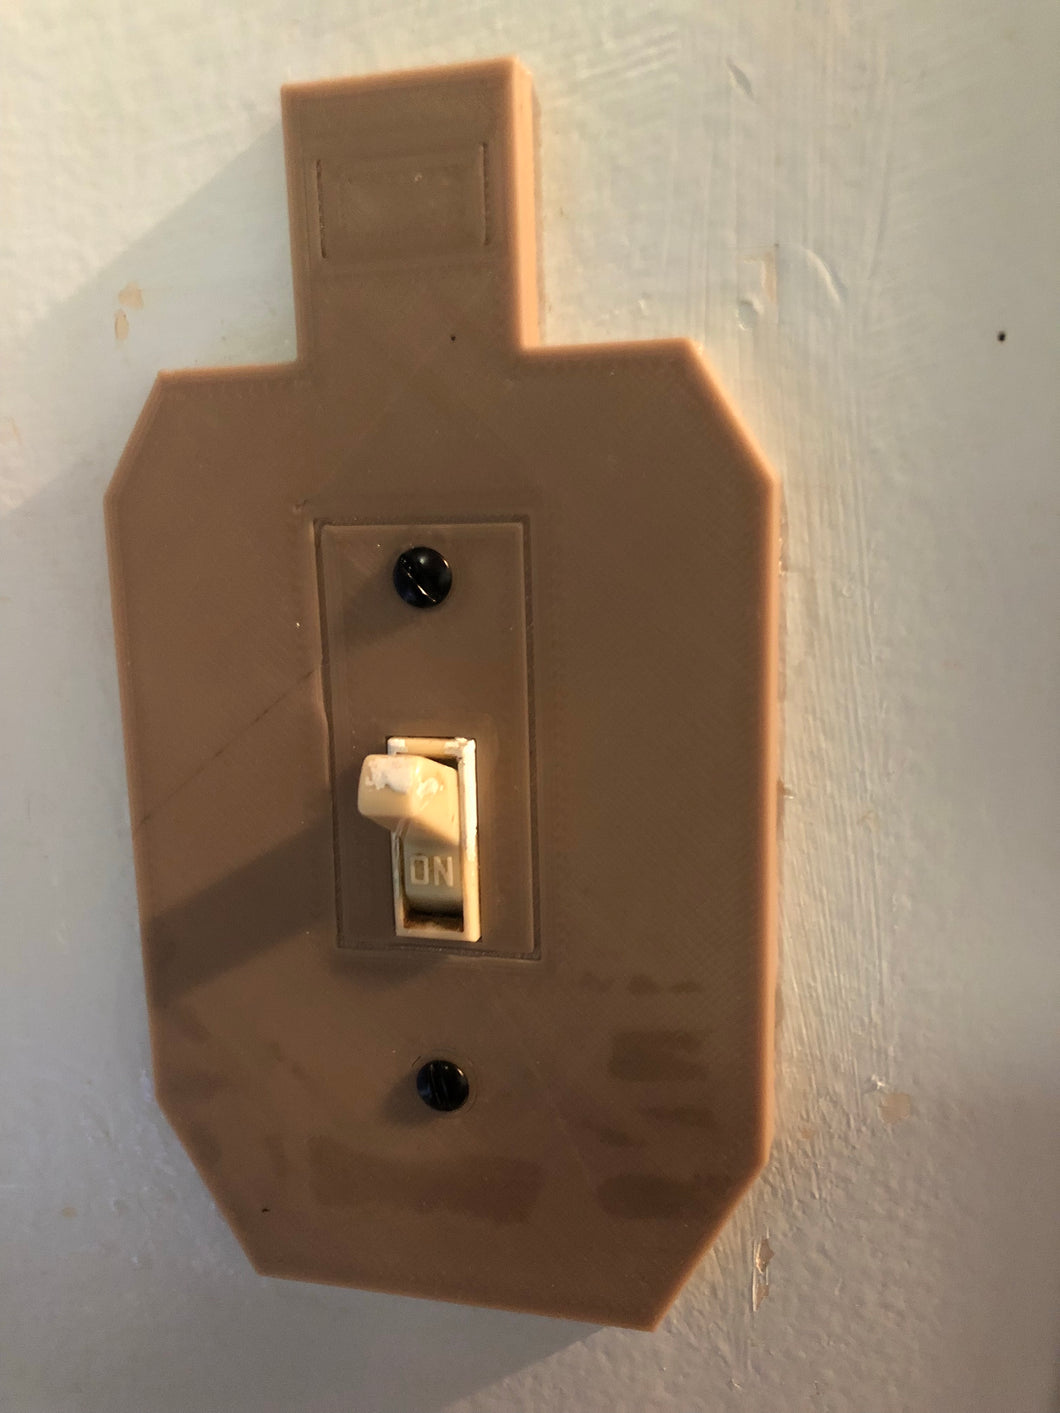 Pack of 2 Silhouette target light switch covers